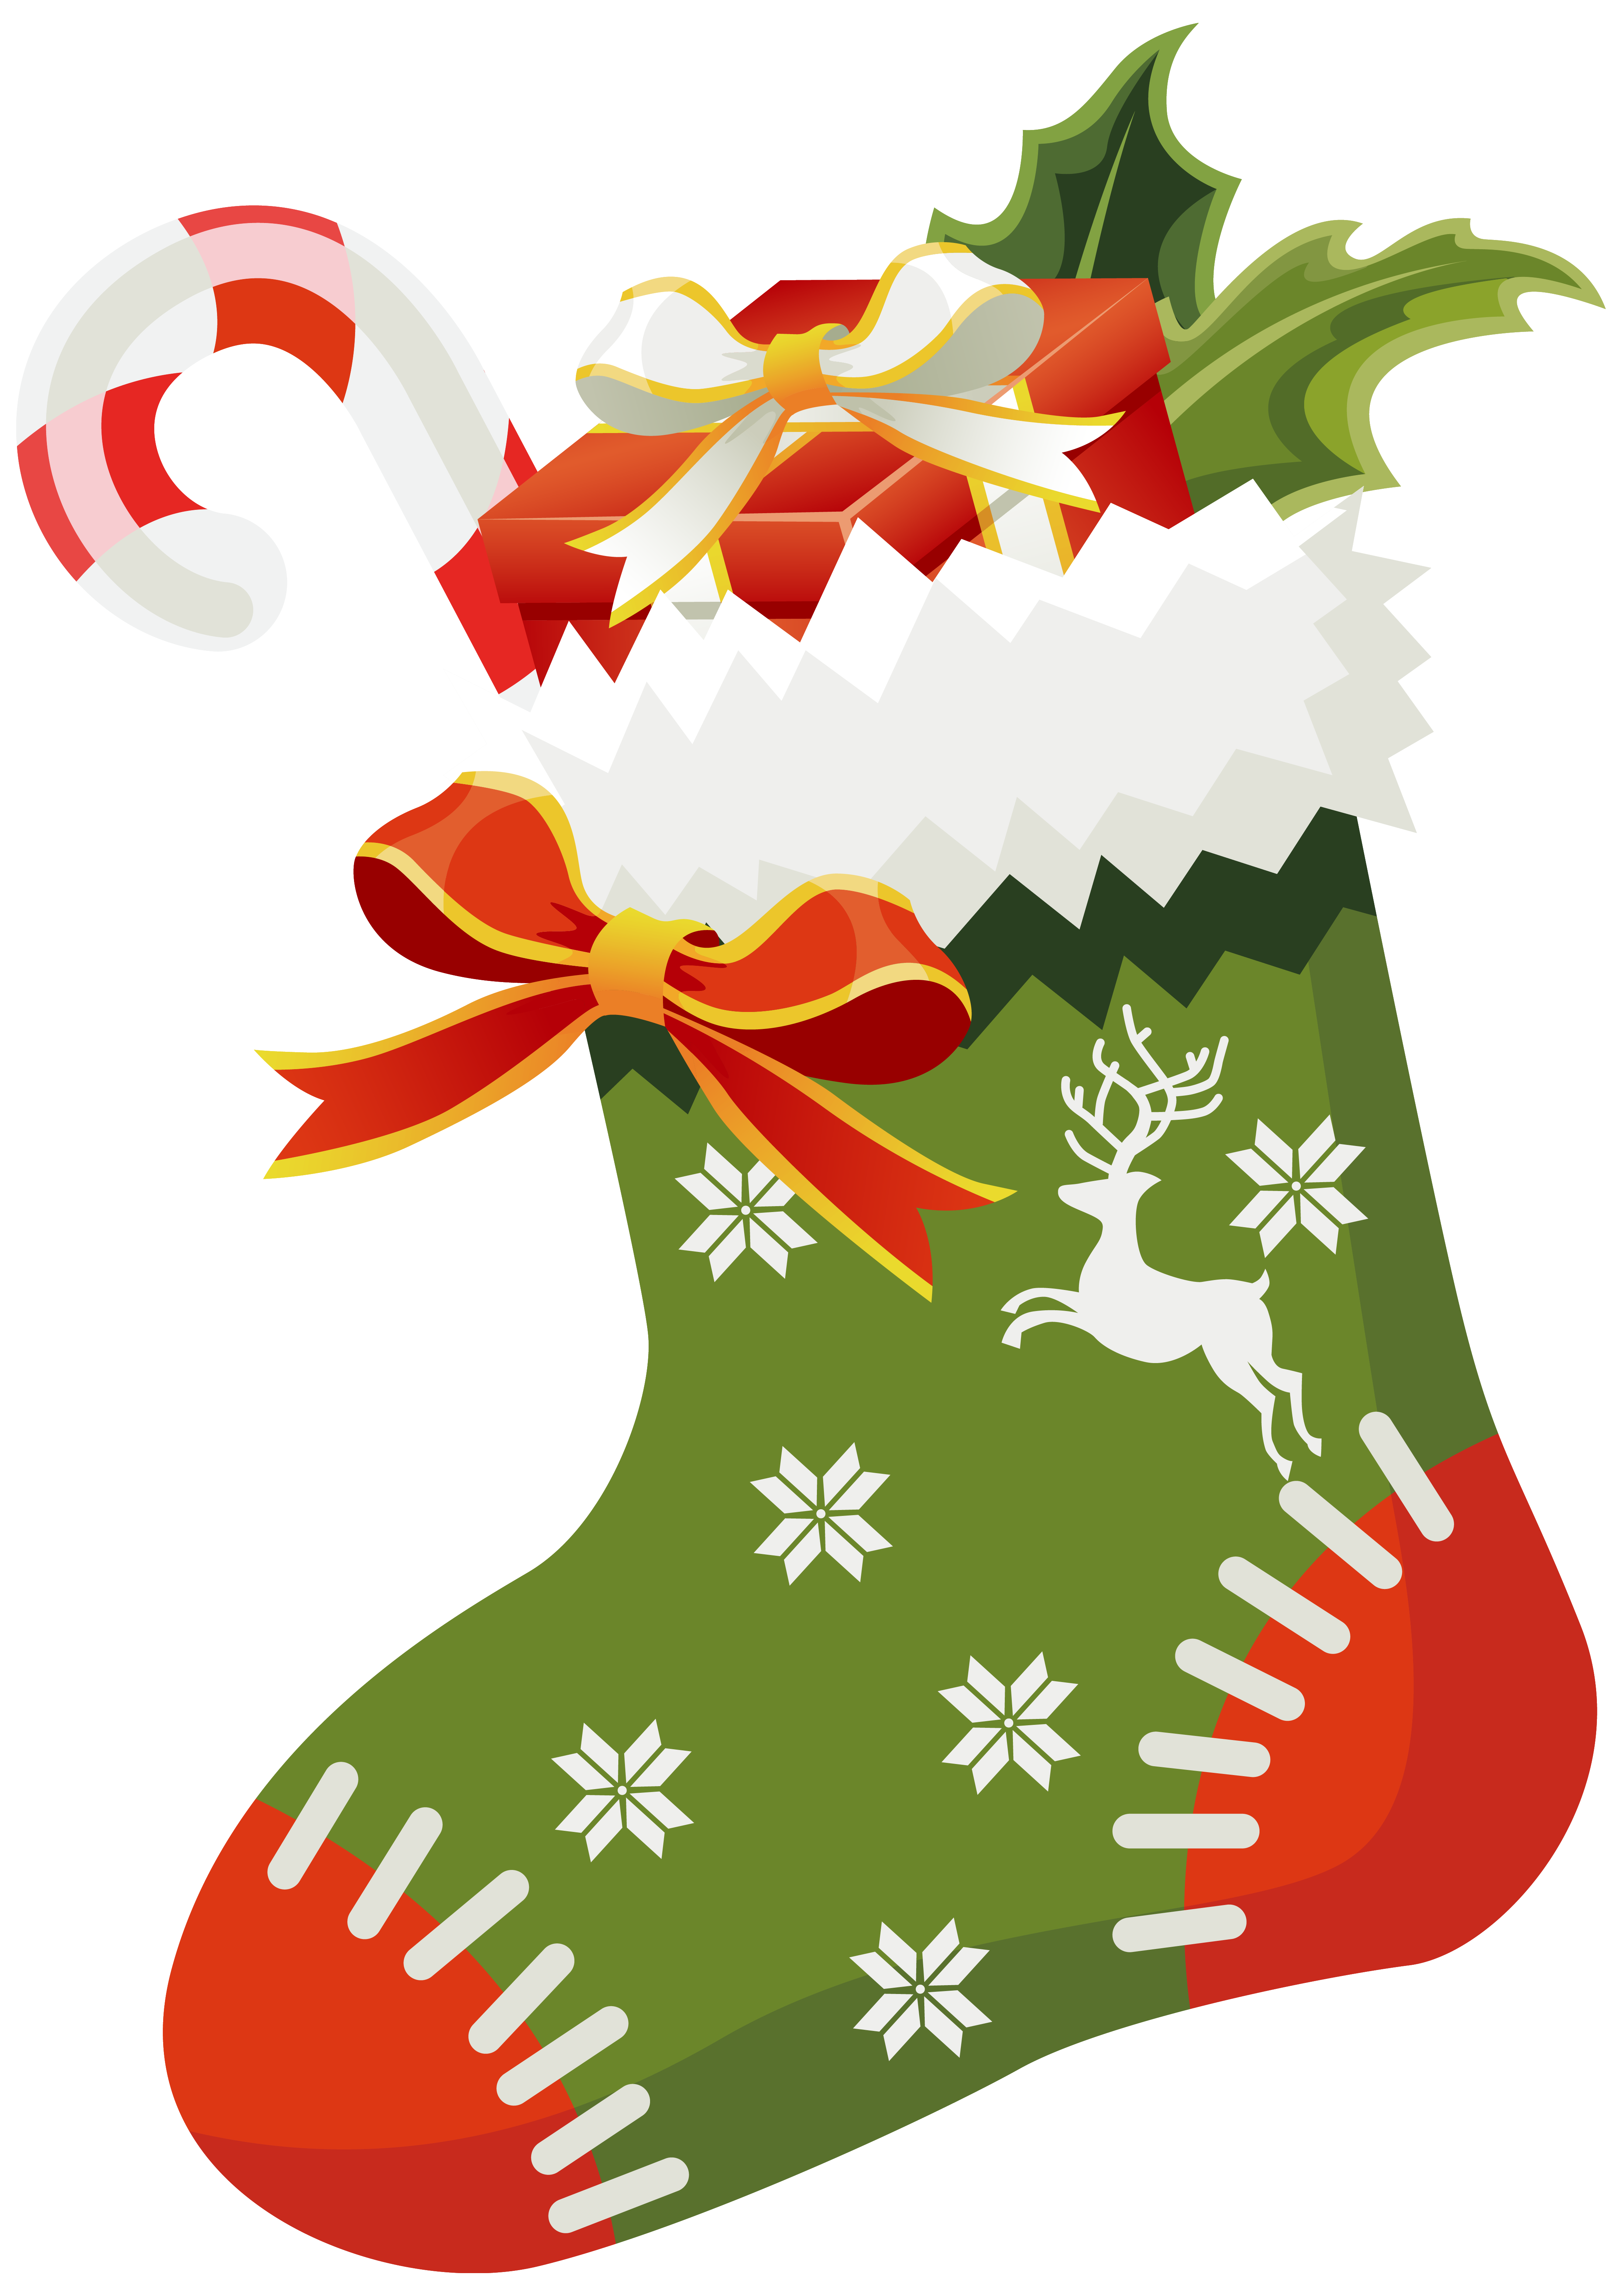 jpg free download Stocking clipart. Pin by amy on